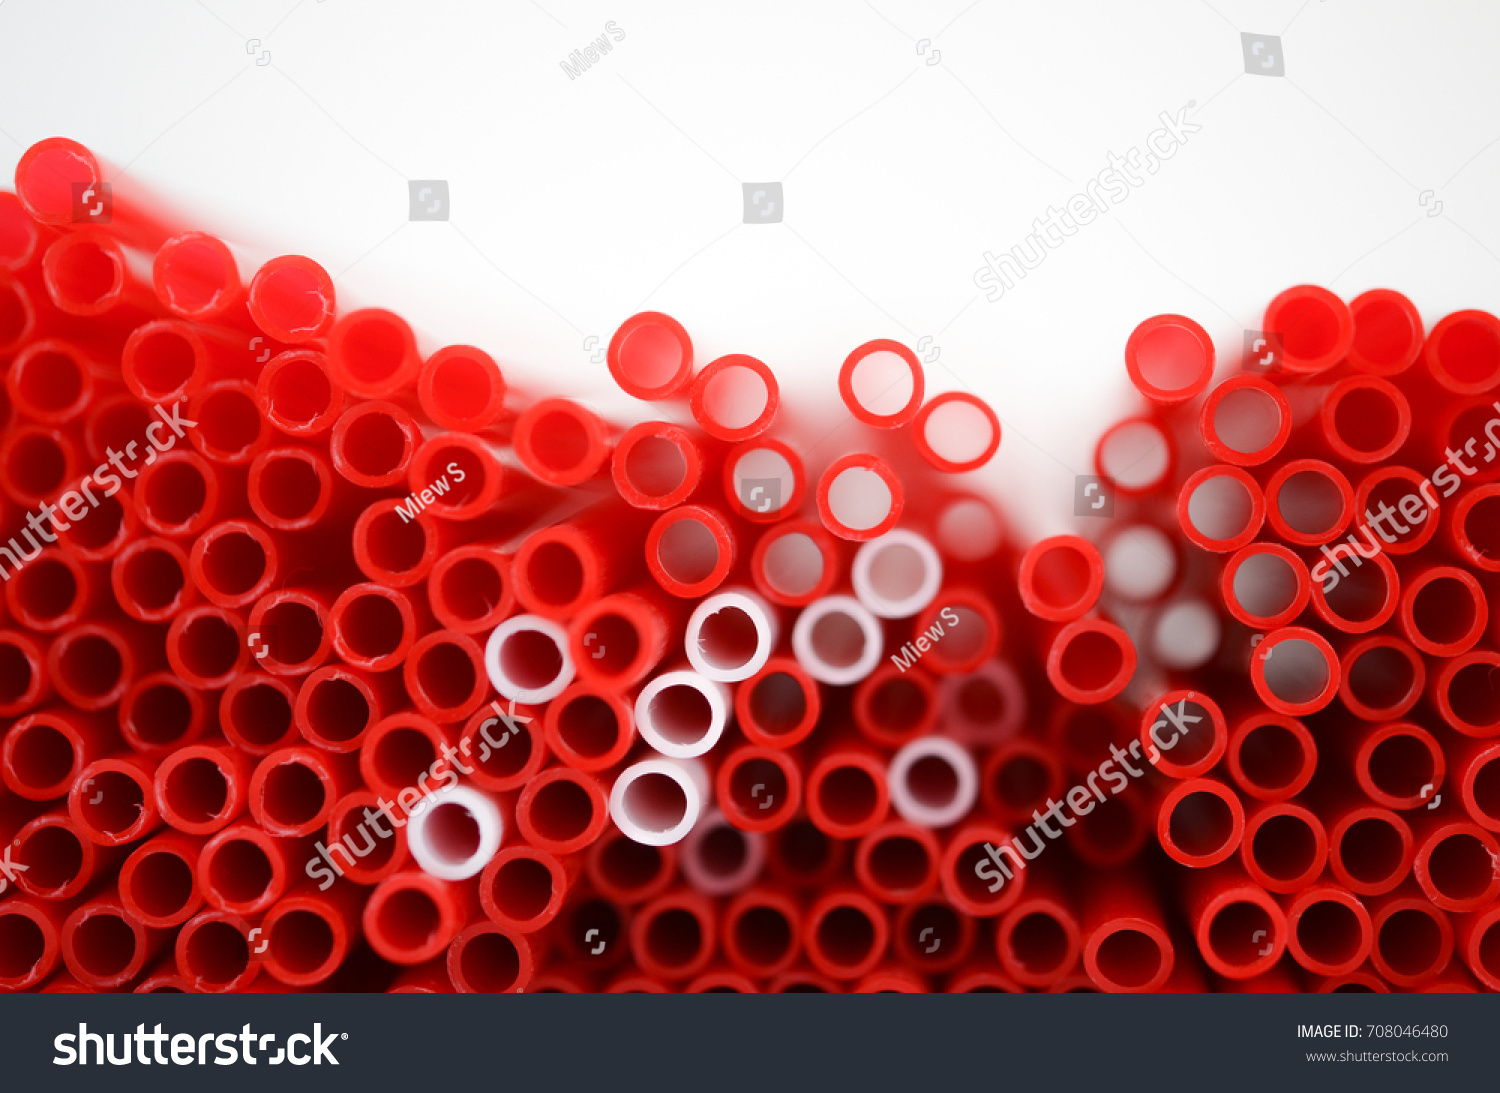 Trypophobia Test Balloon Stick Mini Pipe Backgrounds Textures